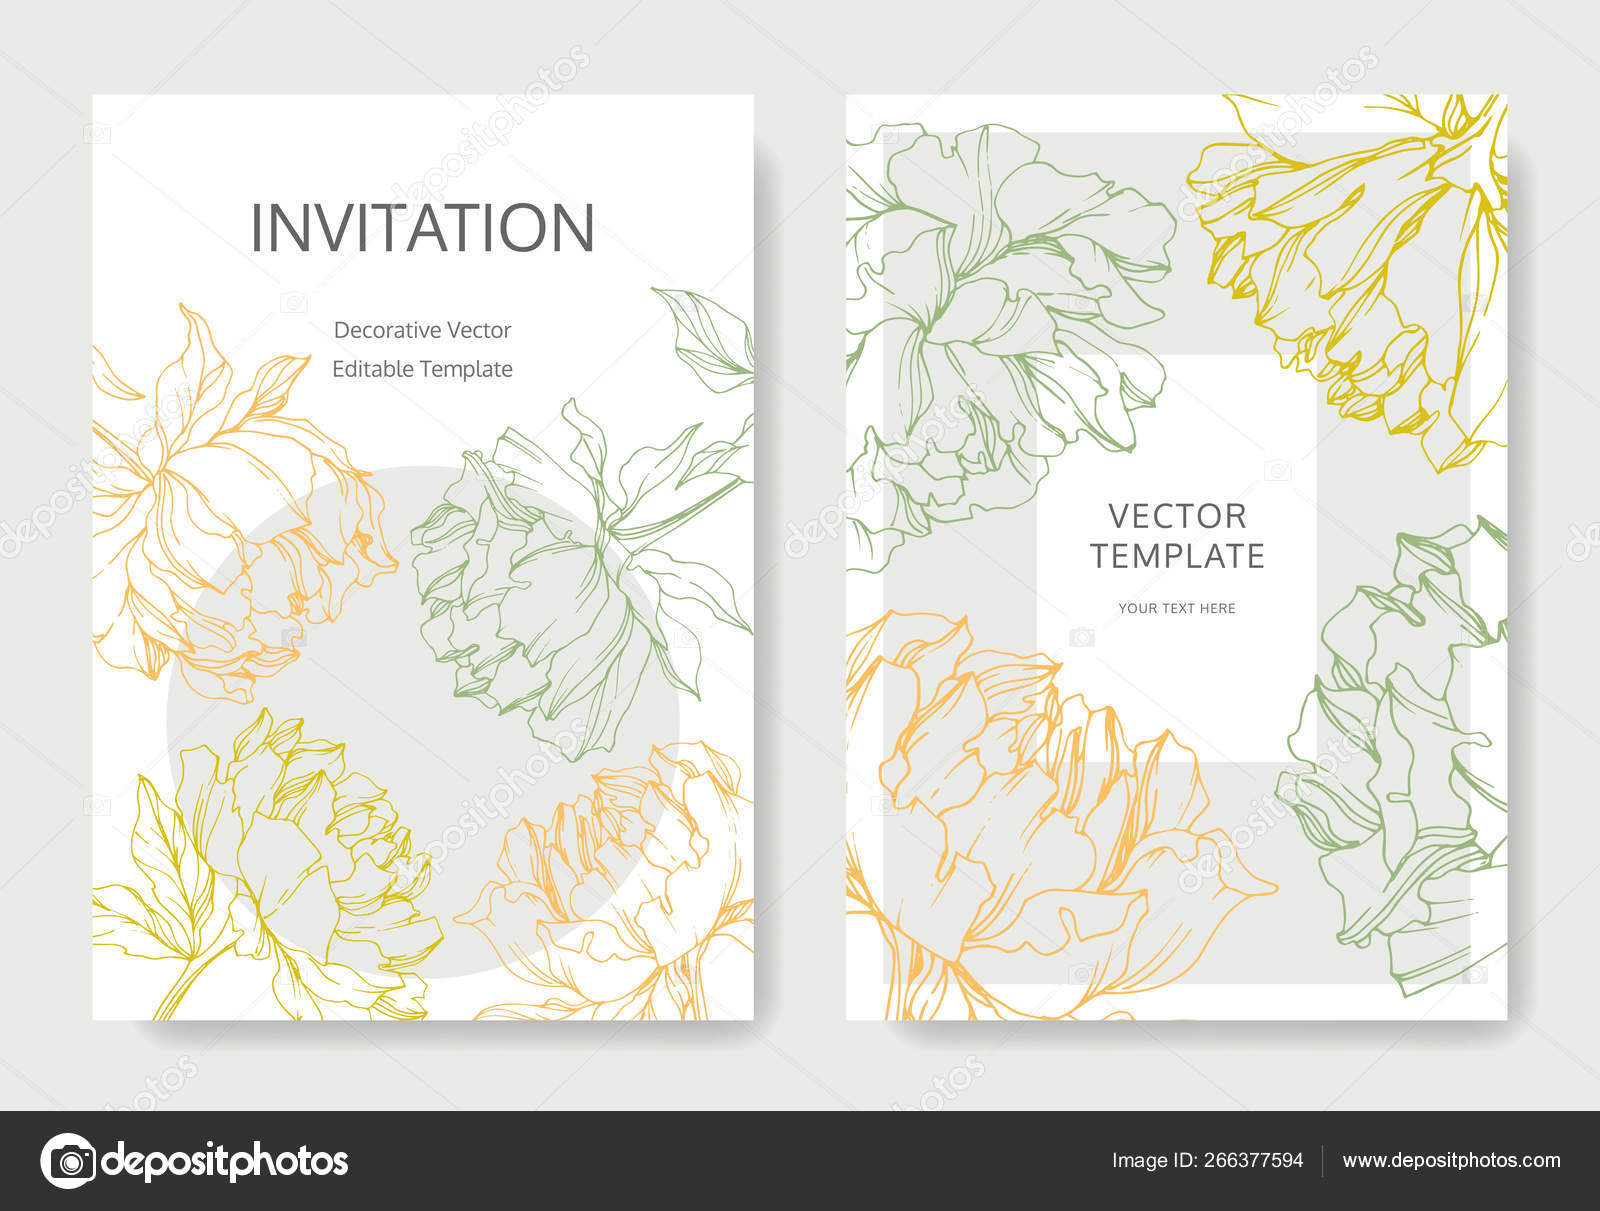 Invitation Cards Templates Lettering Vector Peonies Leaves